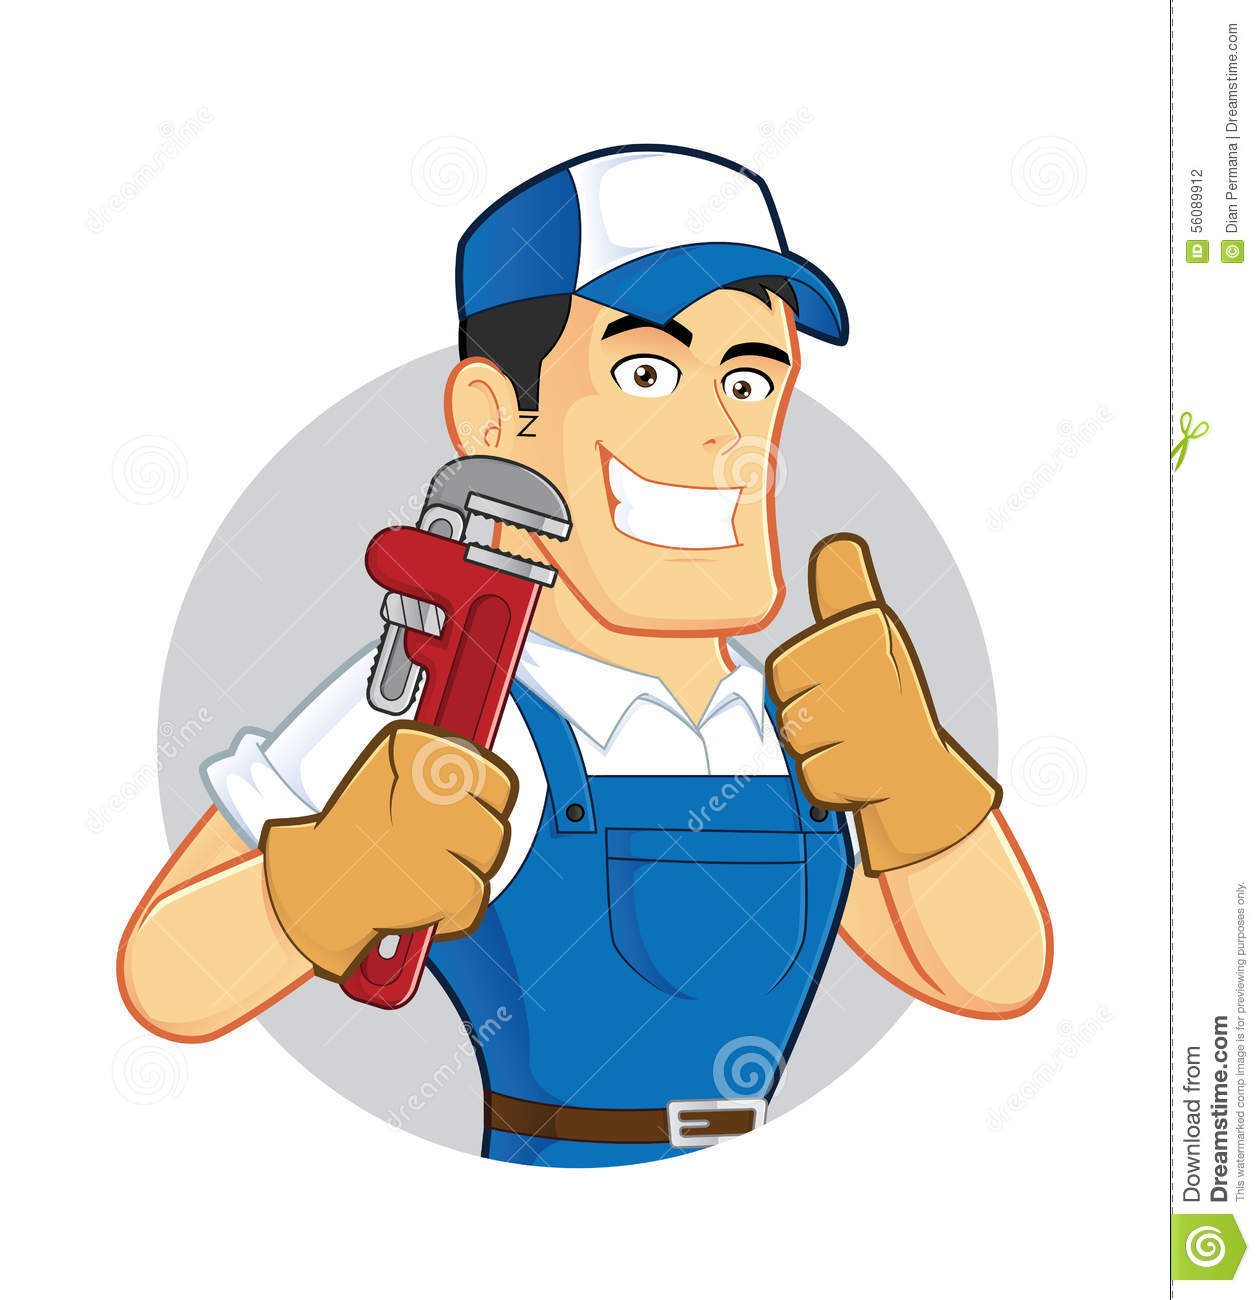 Plumbing character clipart png library download Plumbing character clipart - ClipartFest png library download